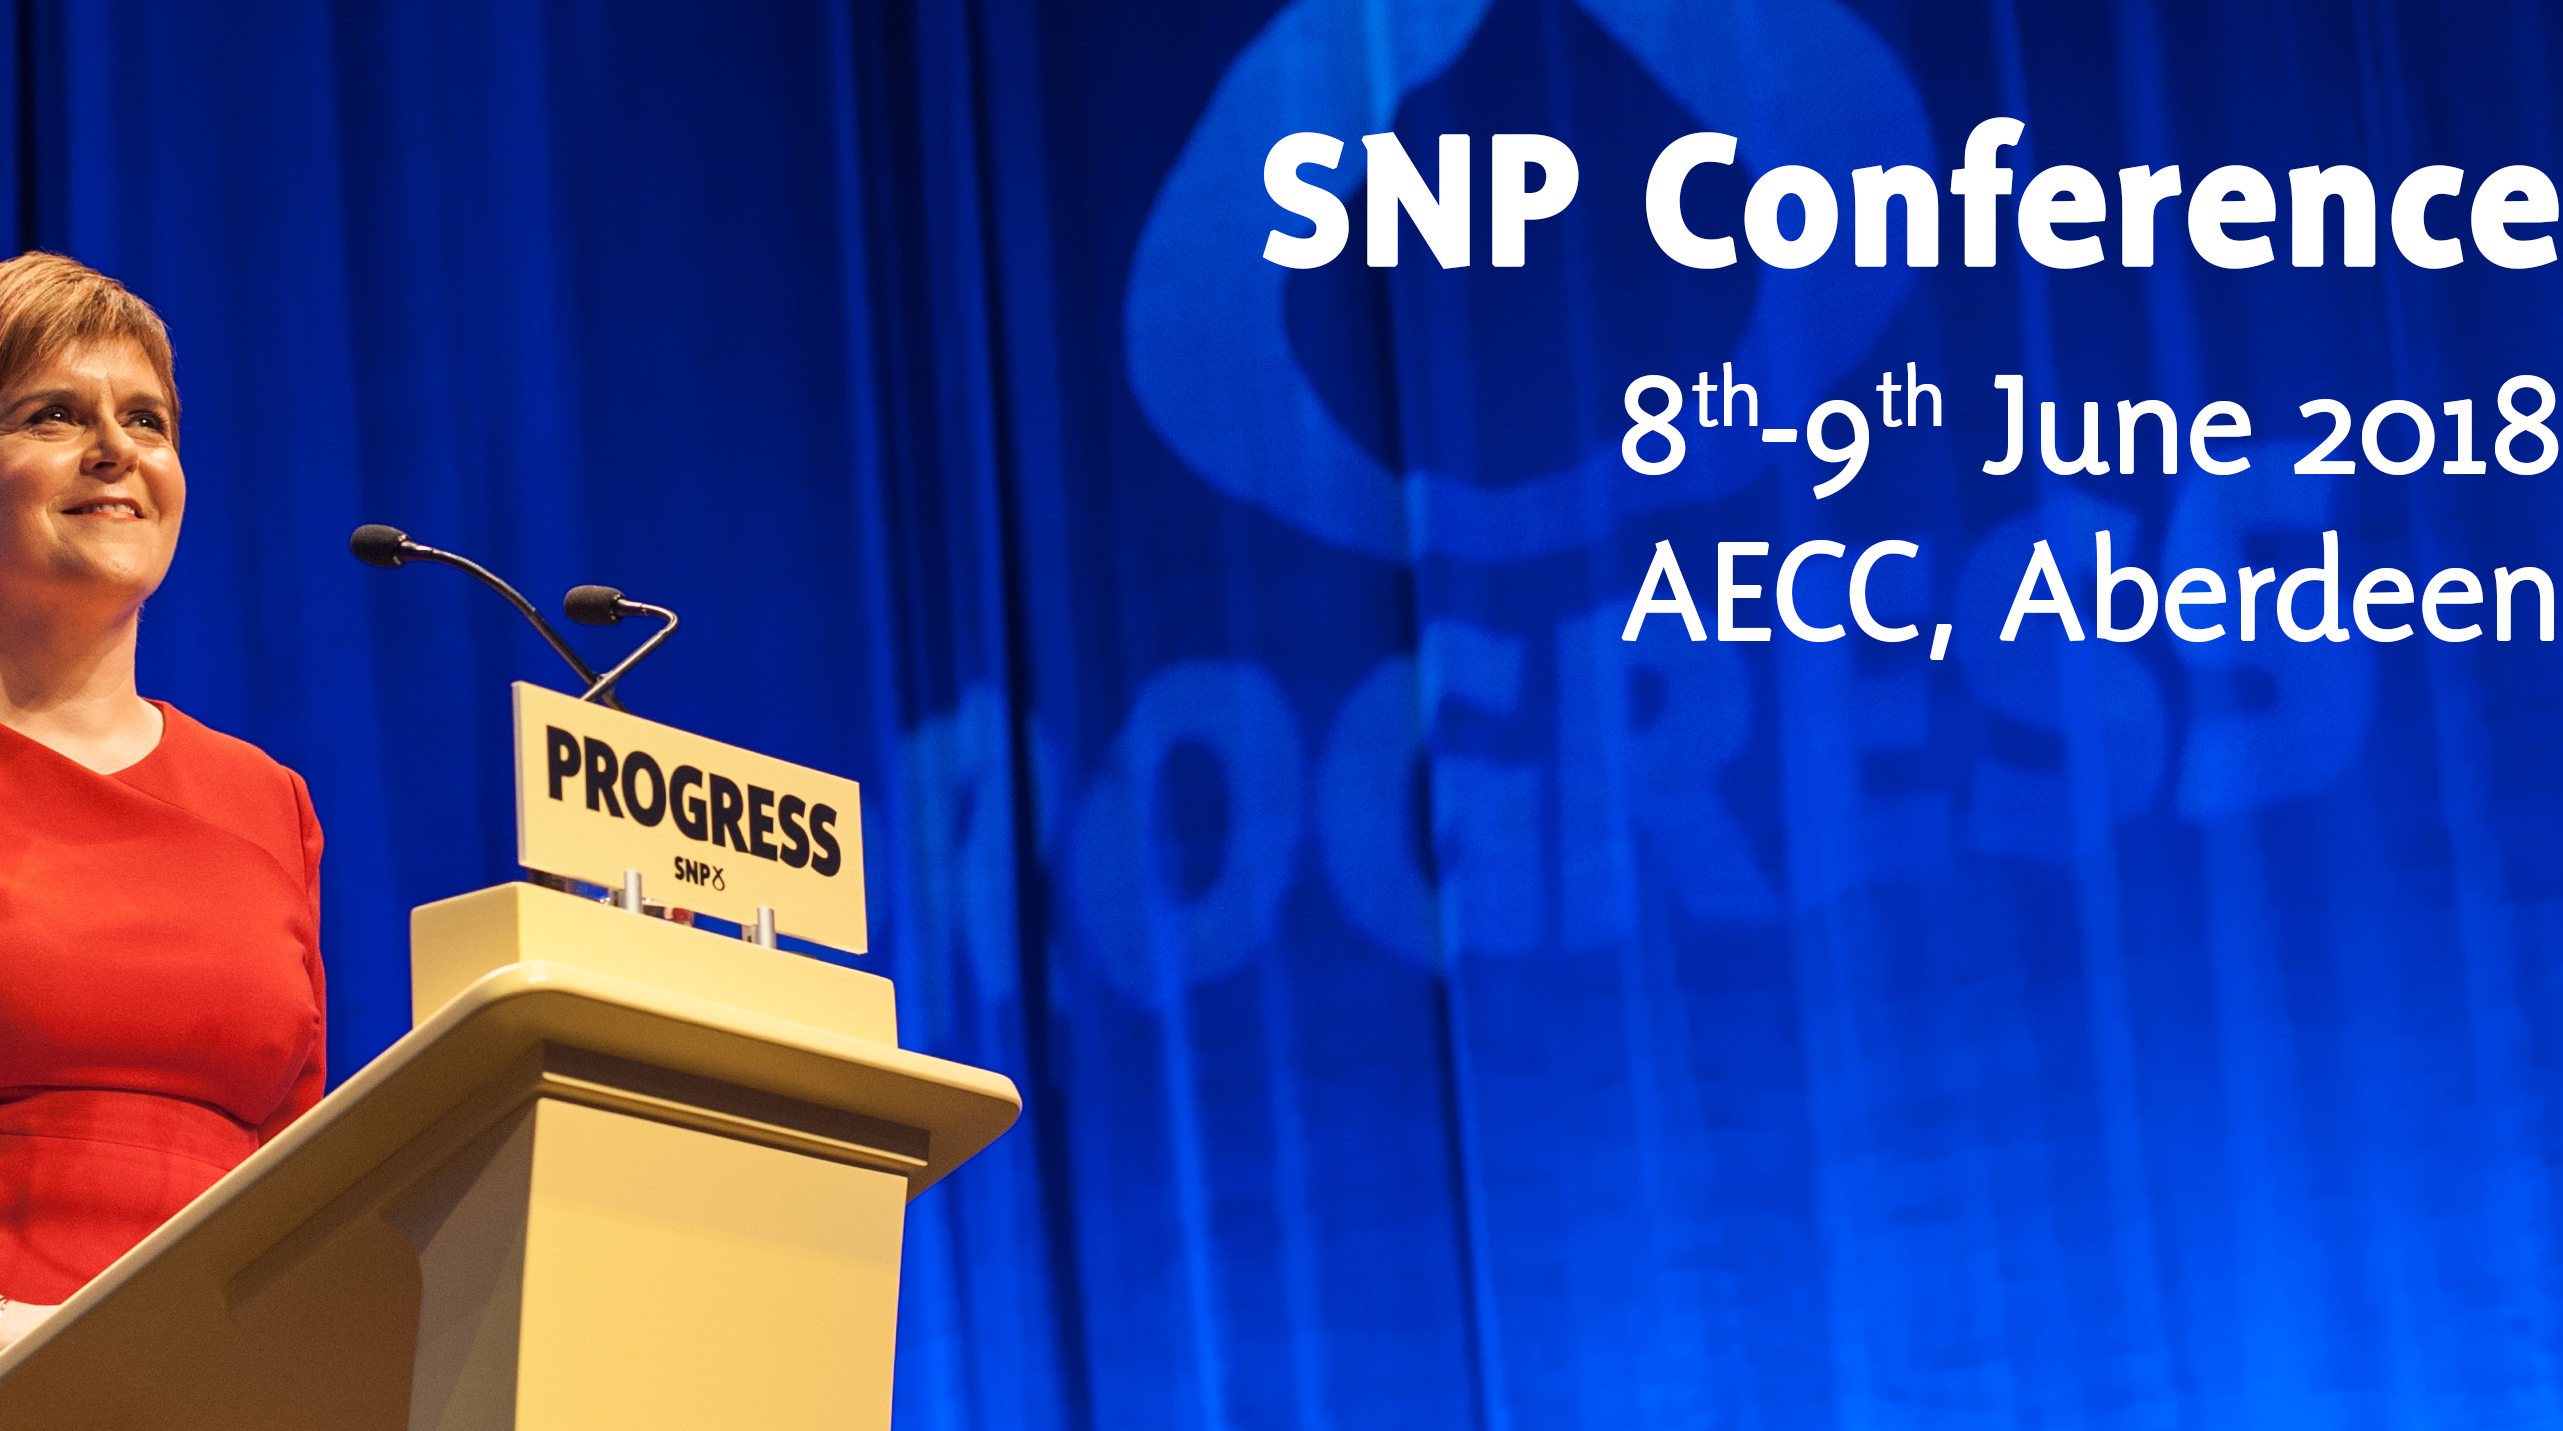 SNP Conference 9th June